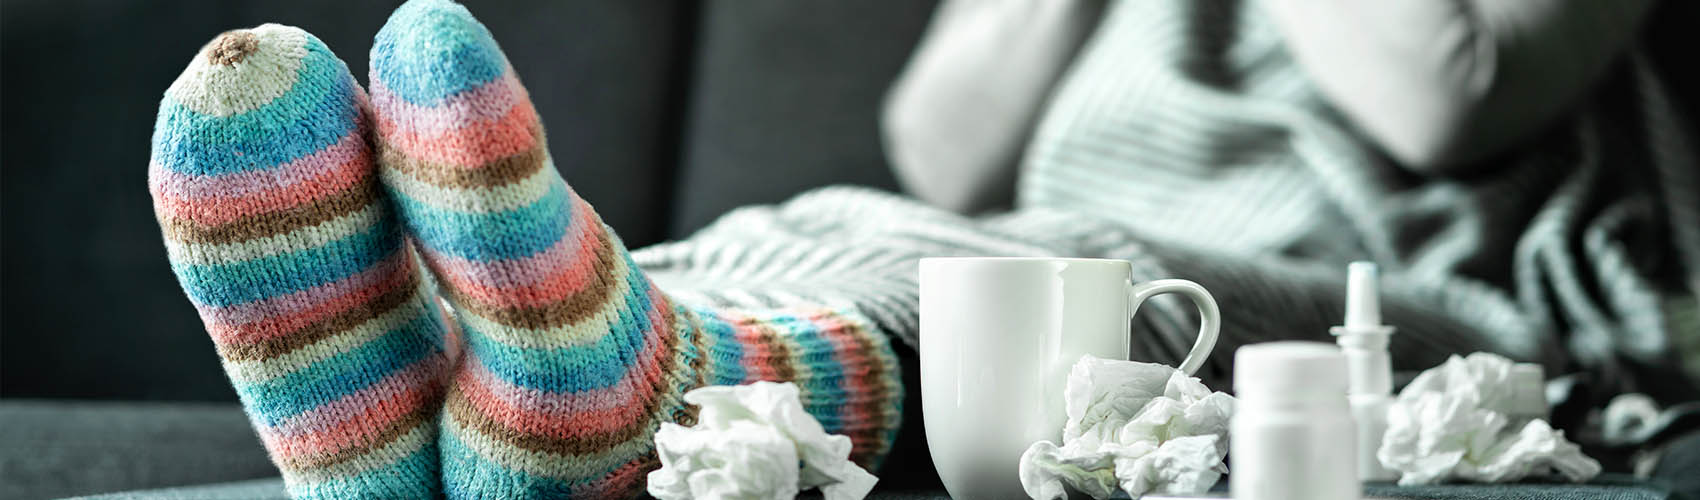 Homemade Flu Remedies to Get You Better in No Time